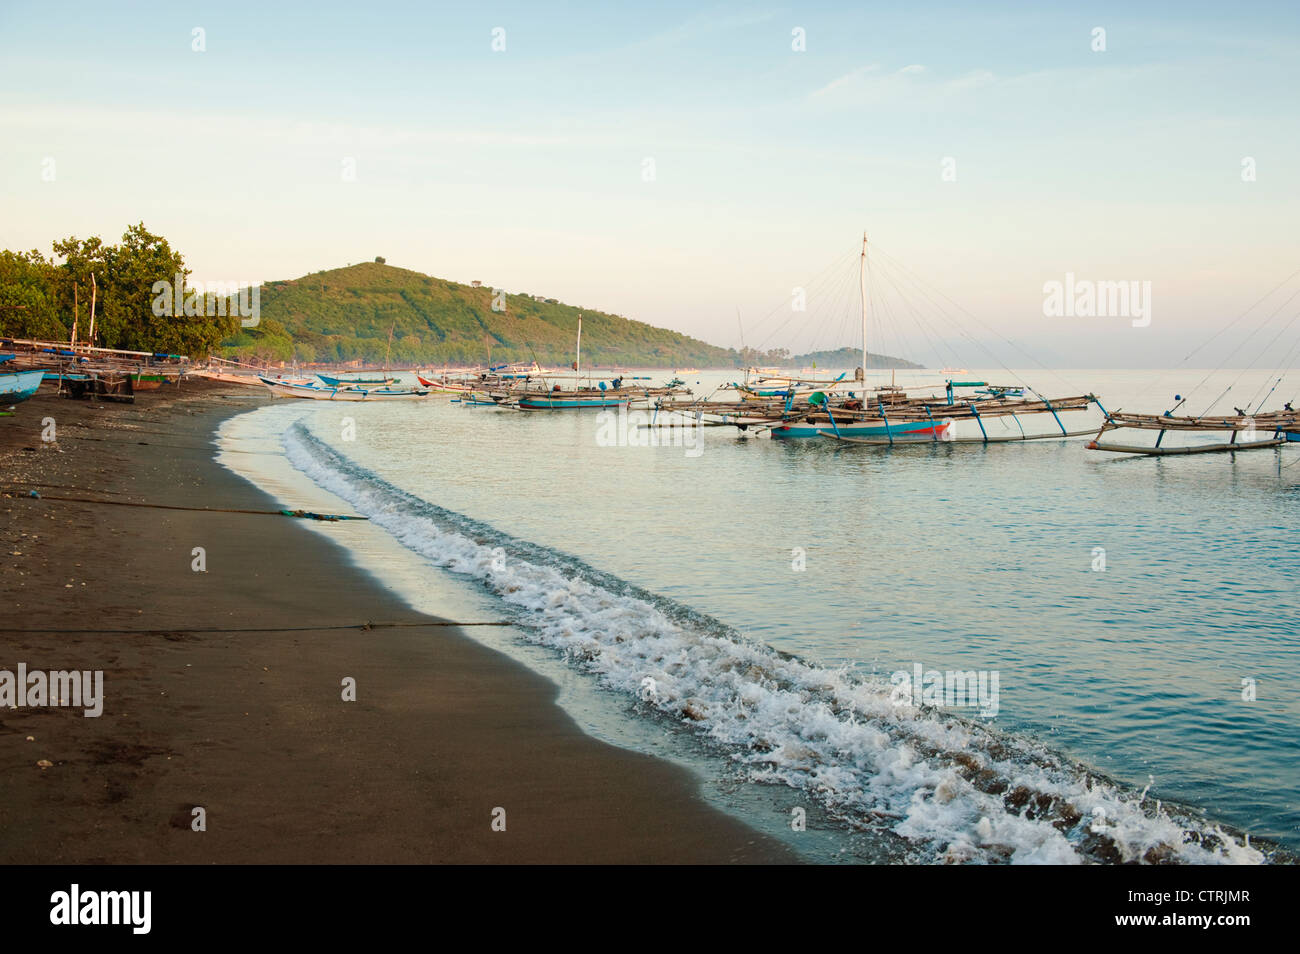 Balinese fishing boats anchor off the beach in the village of Pemuteran in north Bali, a destination for SCUBA and - Stock Image